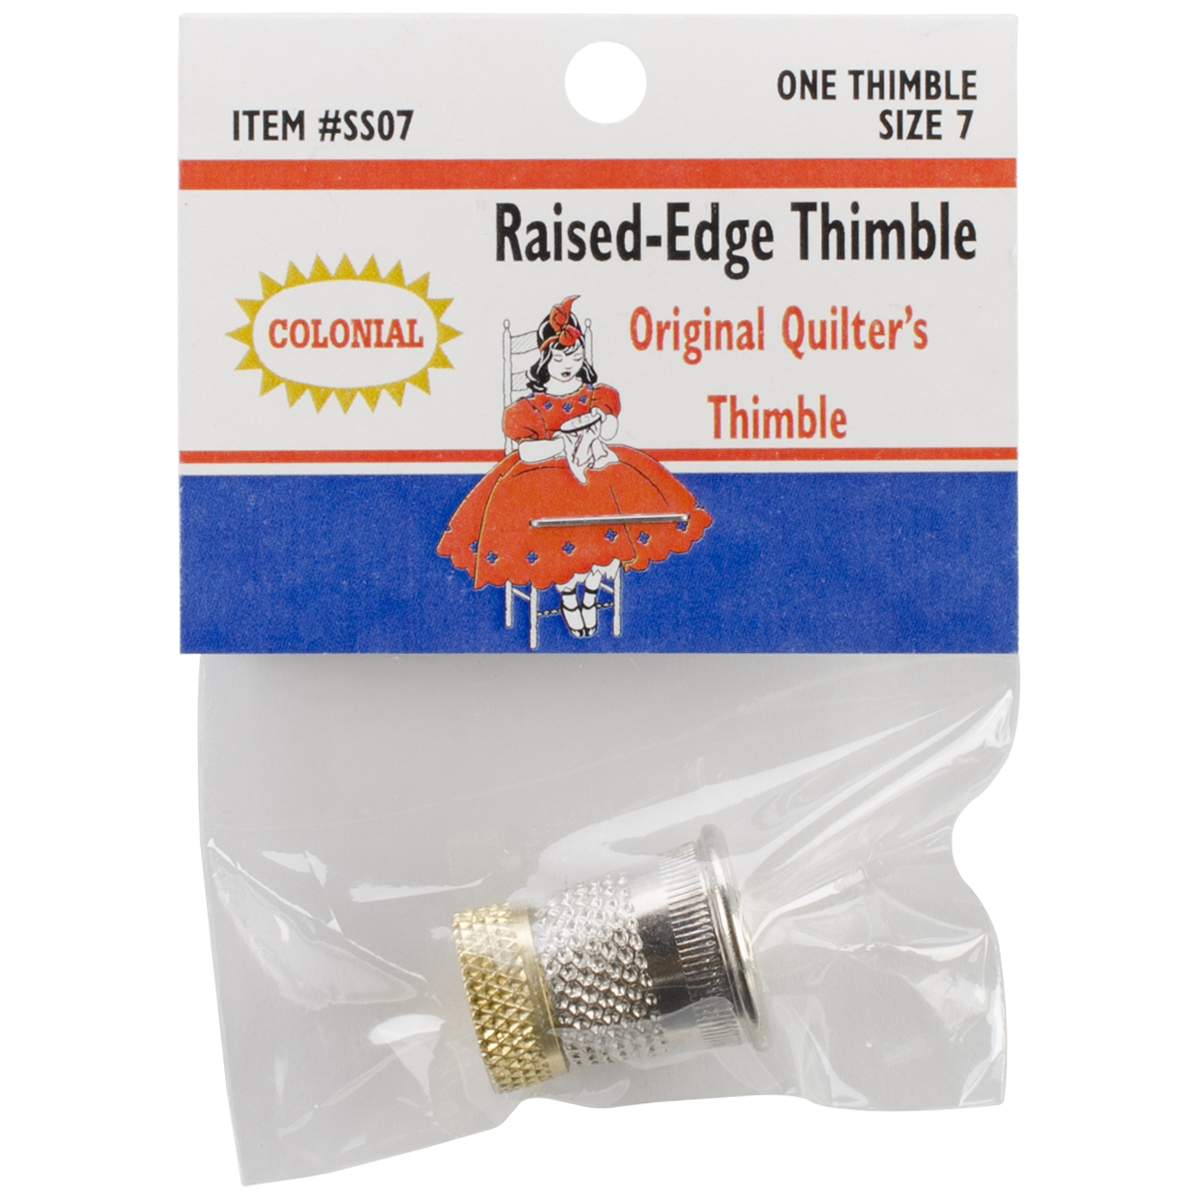 SST-7 Colonial Raised-Edge Thimble-Size 7